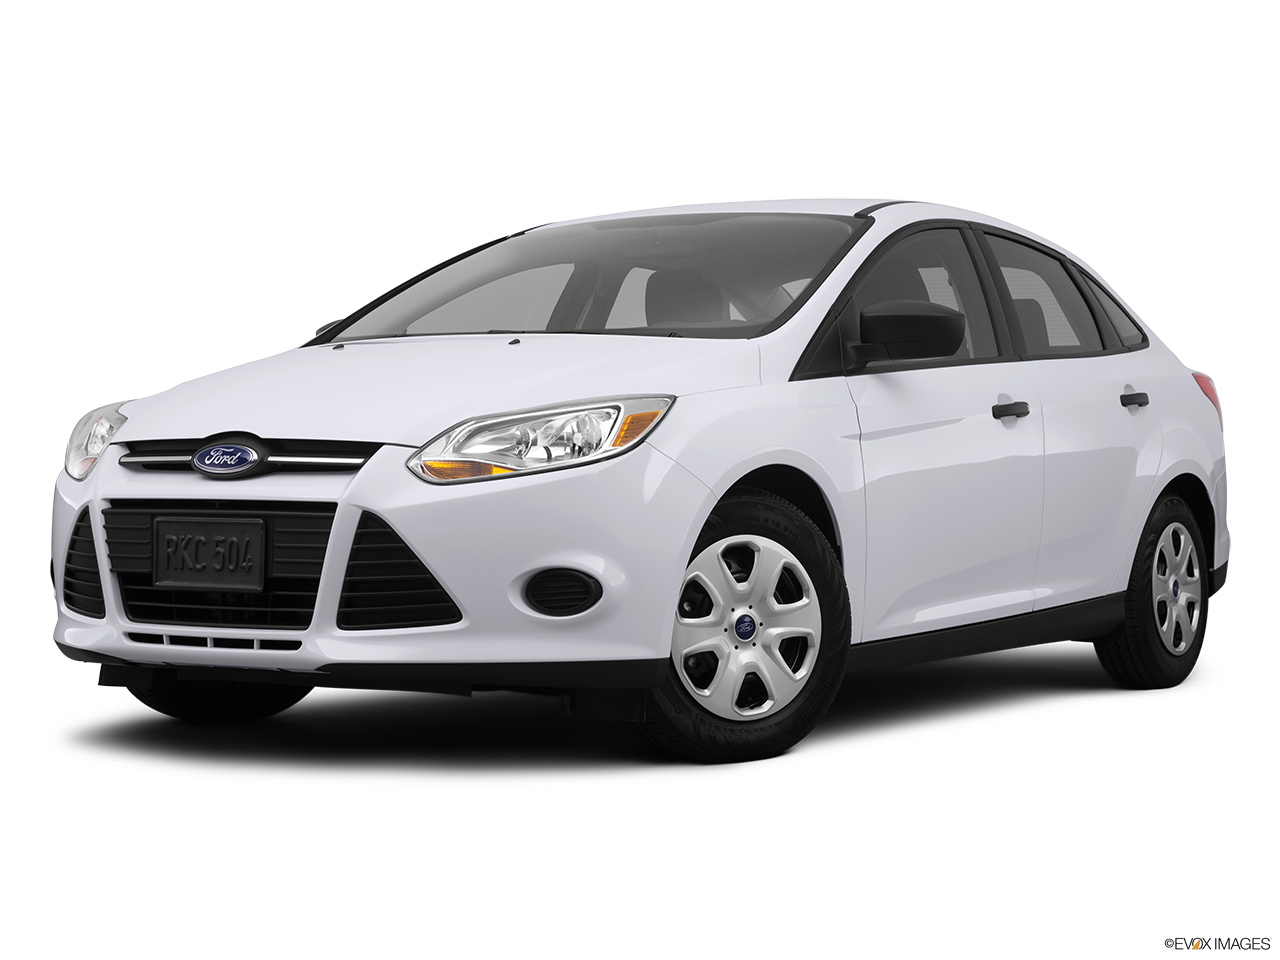 2012 Honda Civic Vs Ford Focus Which One Should I Buy Water Pump